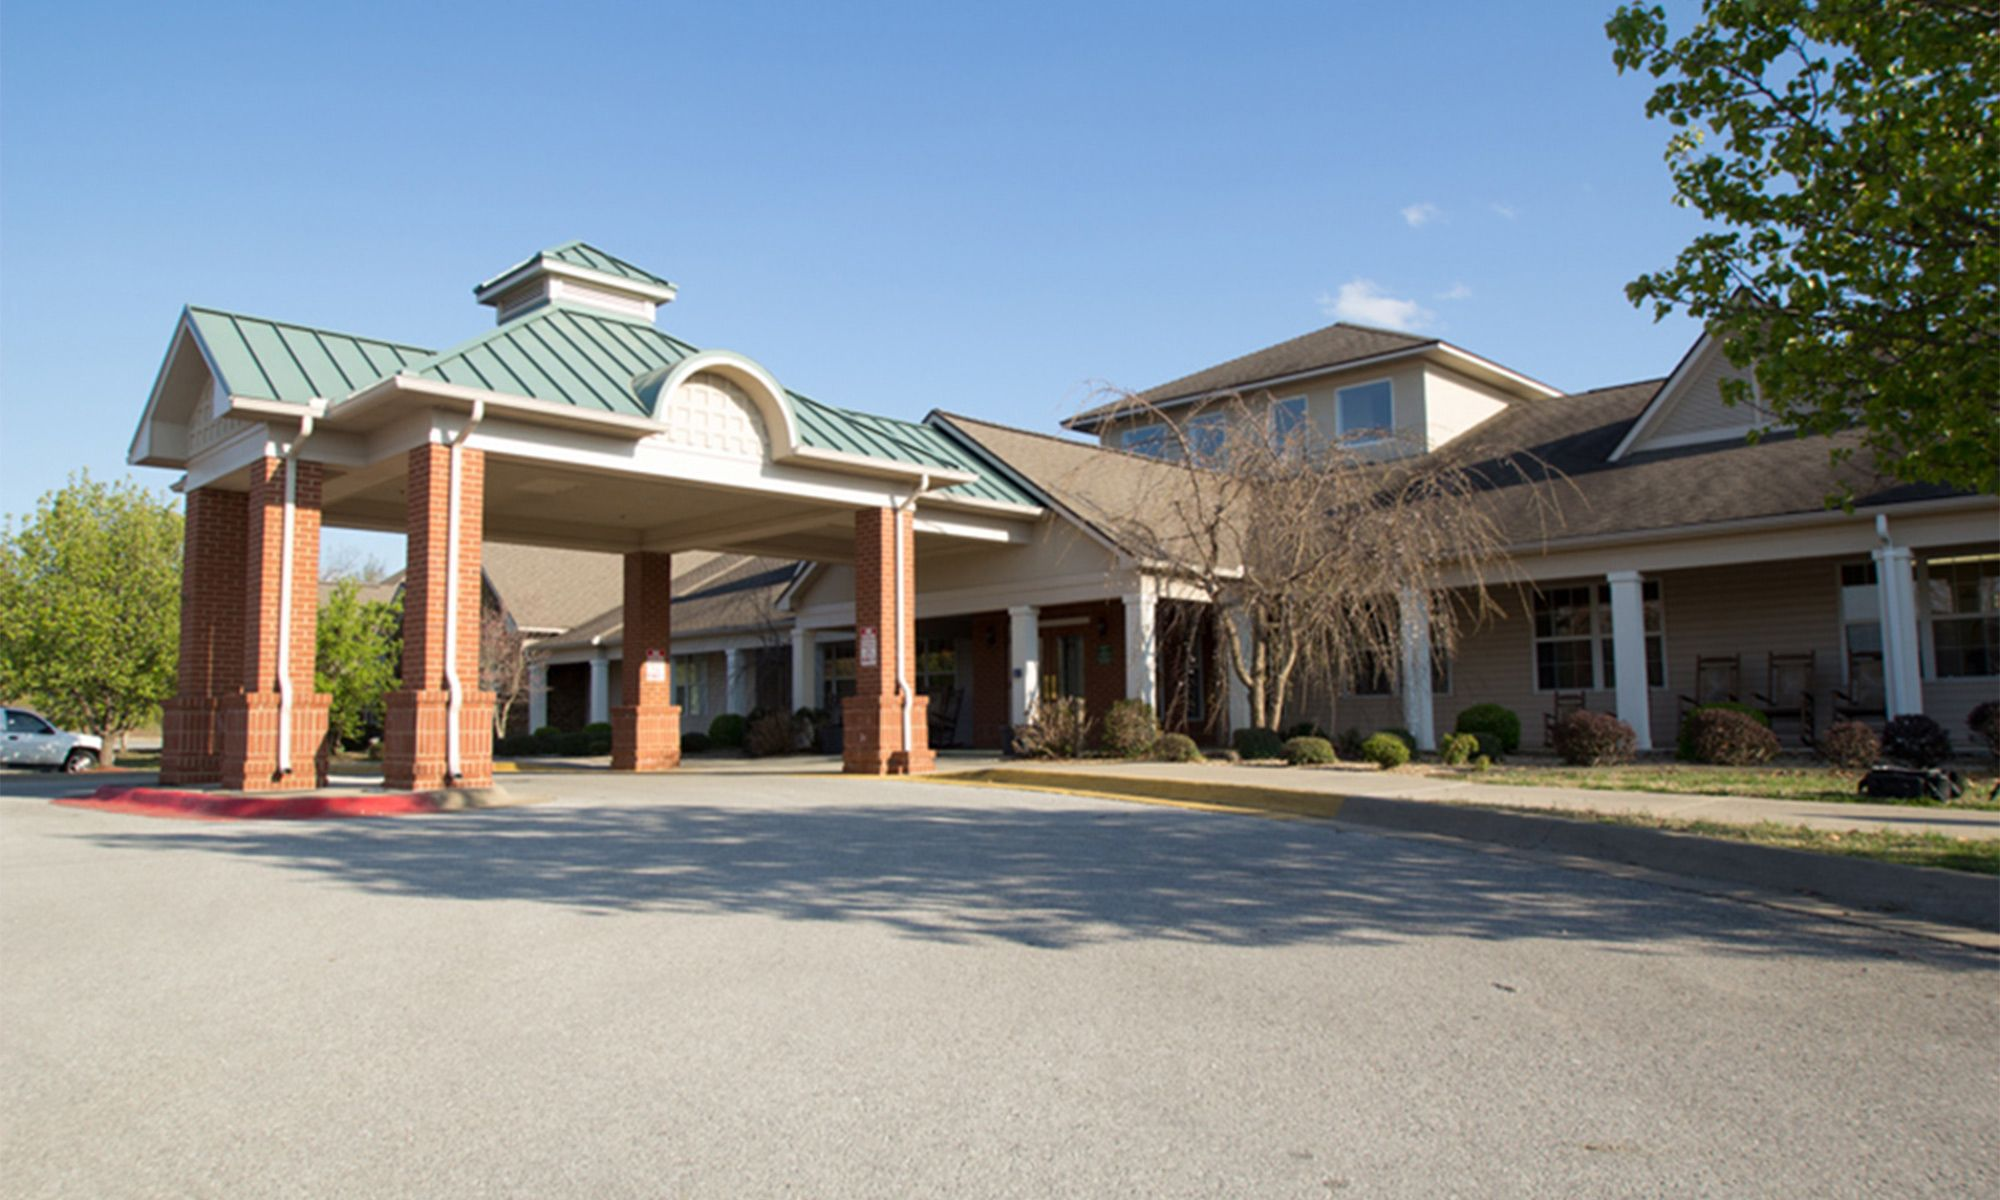 Senior living community in Fayetteville has a clean exterior building